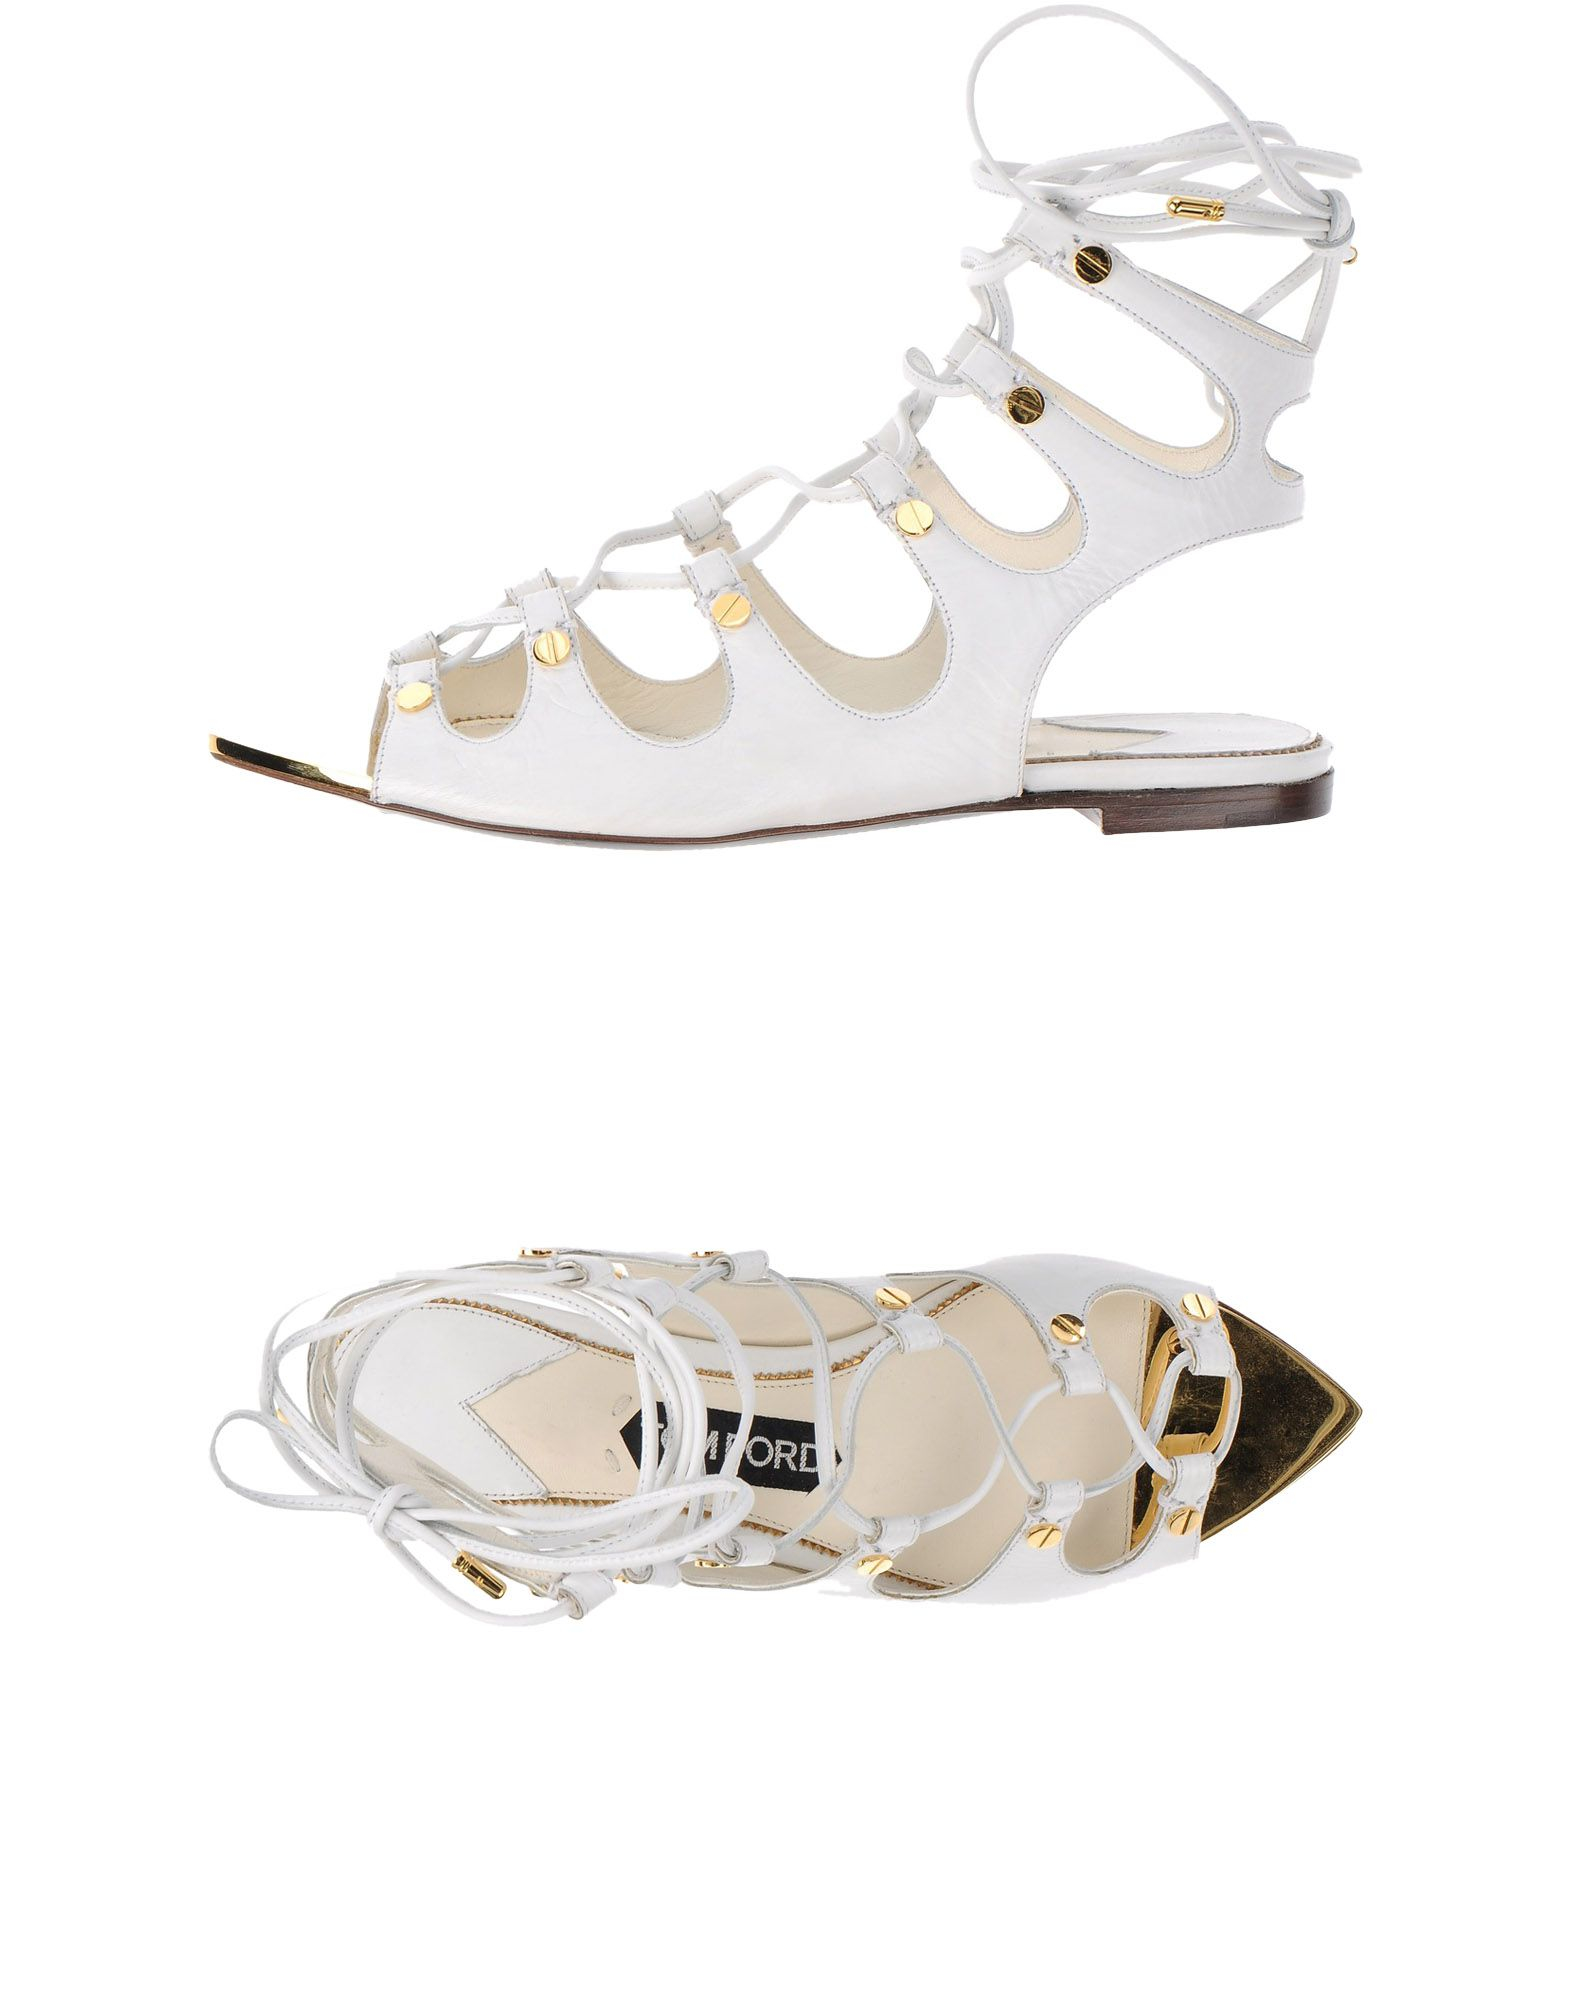 tom ford sandals in white lyst